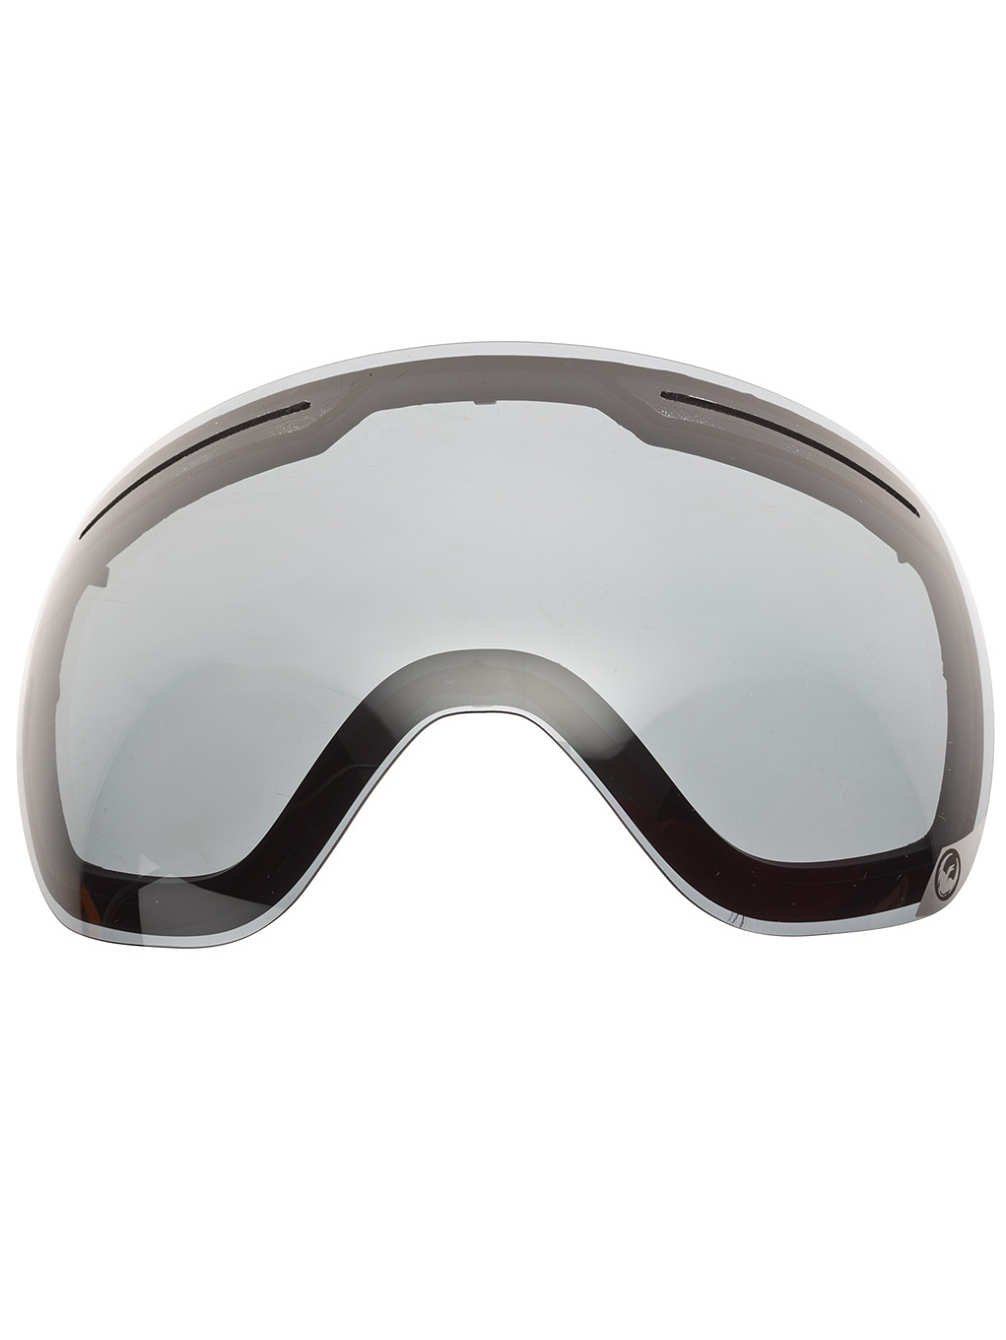 Dragon X1 Snow Goggle Replacement Lens - Dark Smoke (722-5887)